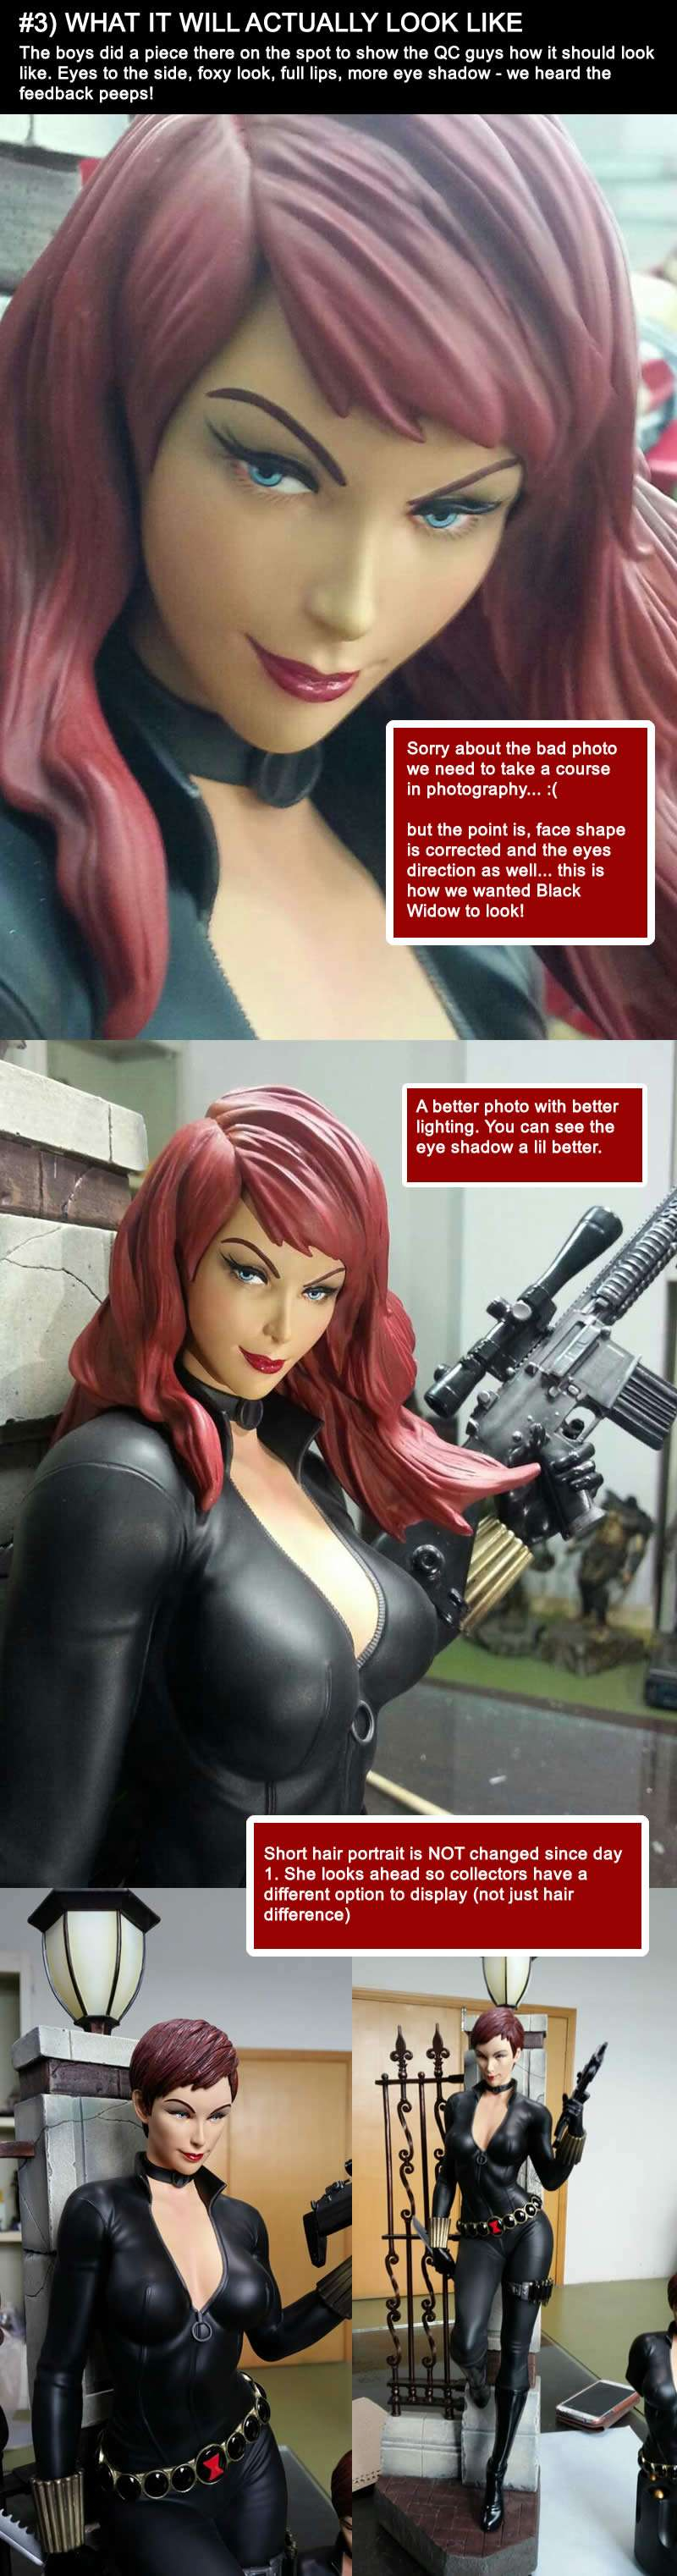 Premium Collectibles : Black Widow - Comics version - Page 3 312